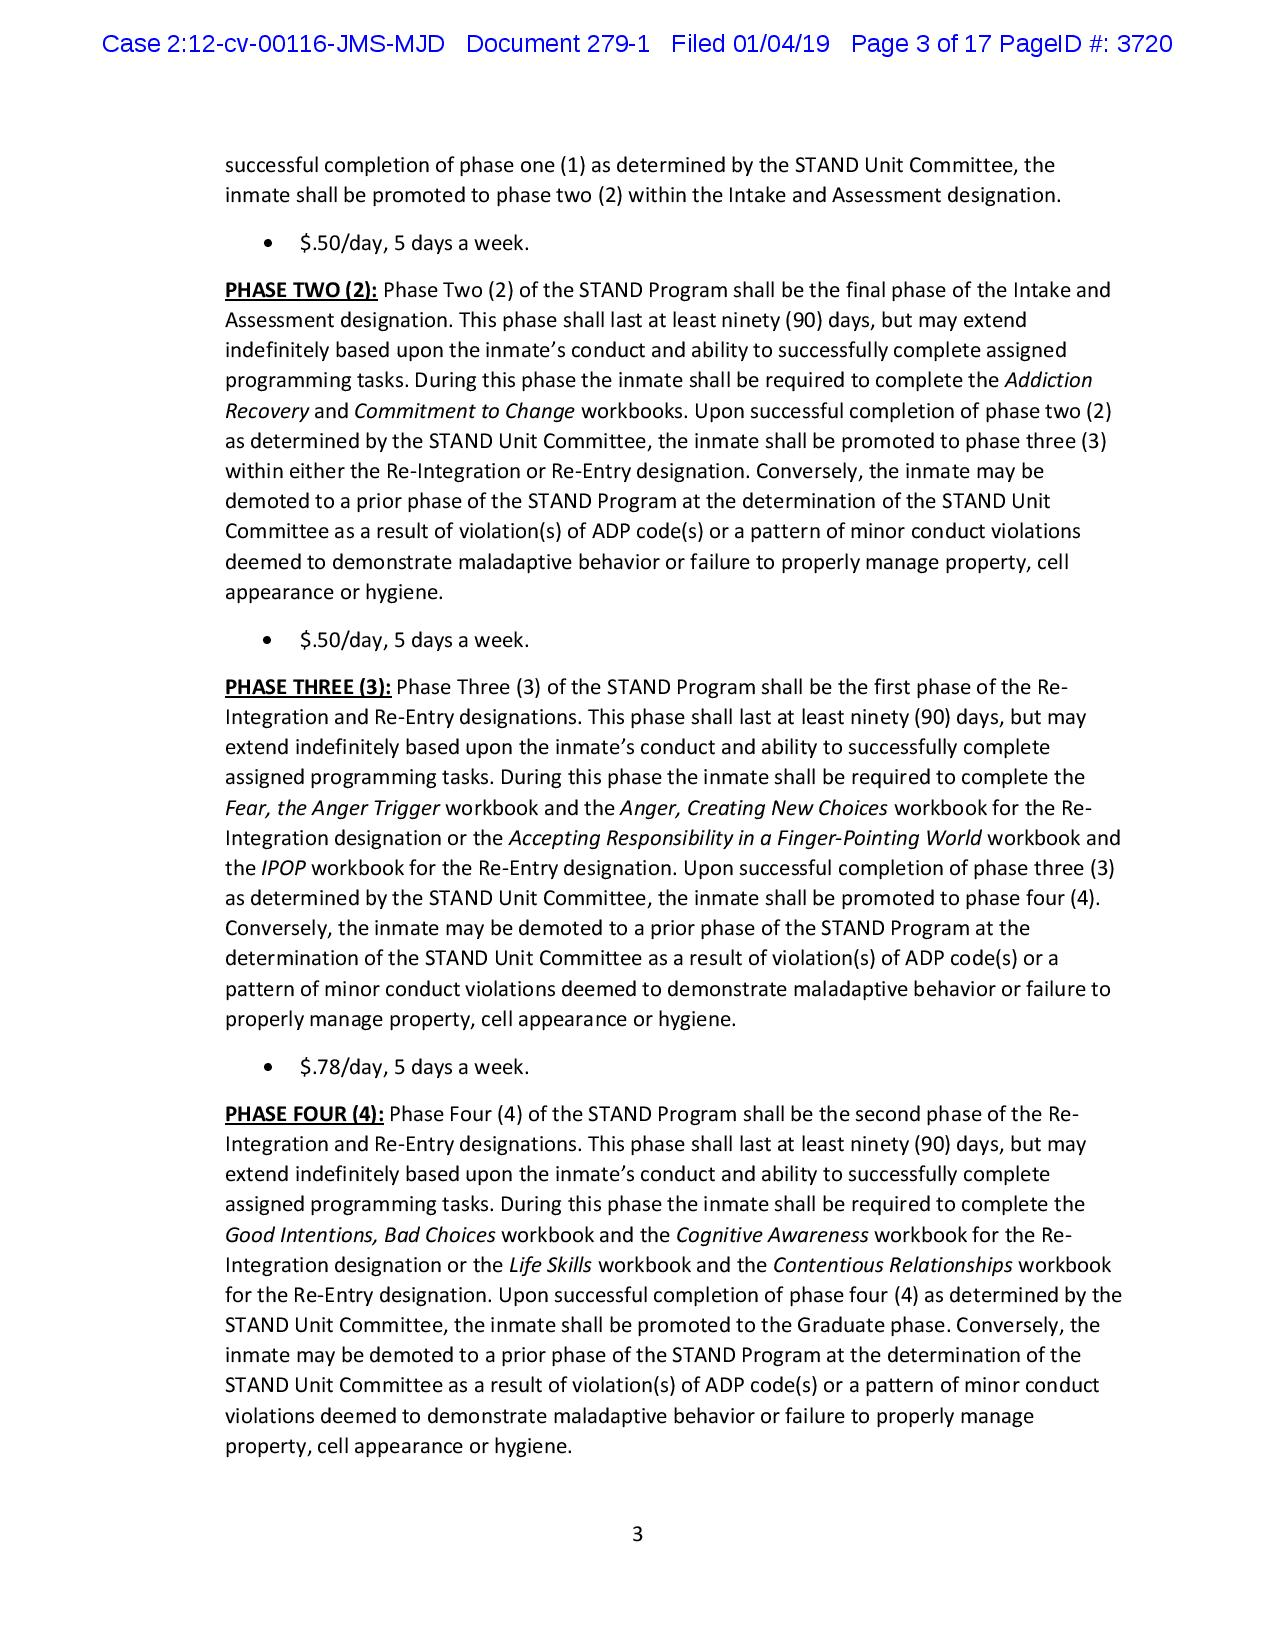 2019-01-04 (Dkt. 279) - ISBY, AARON - Submission of Proposed Plan for Removal from Restrictive Status Housing-page-006.jpg